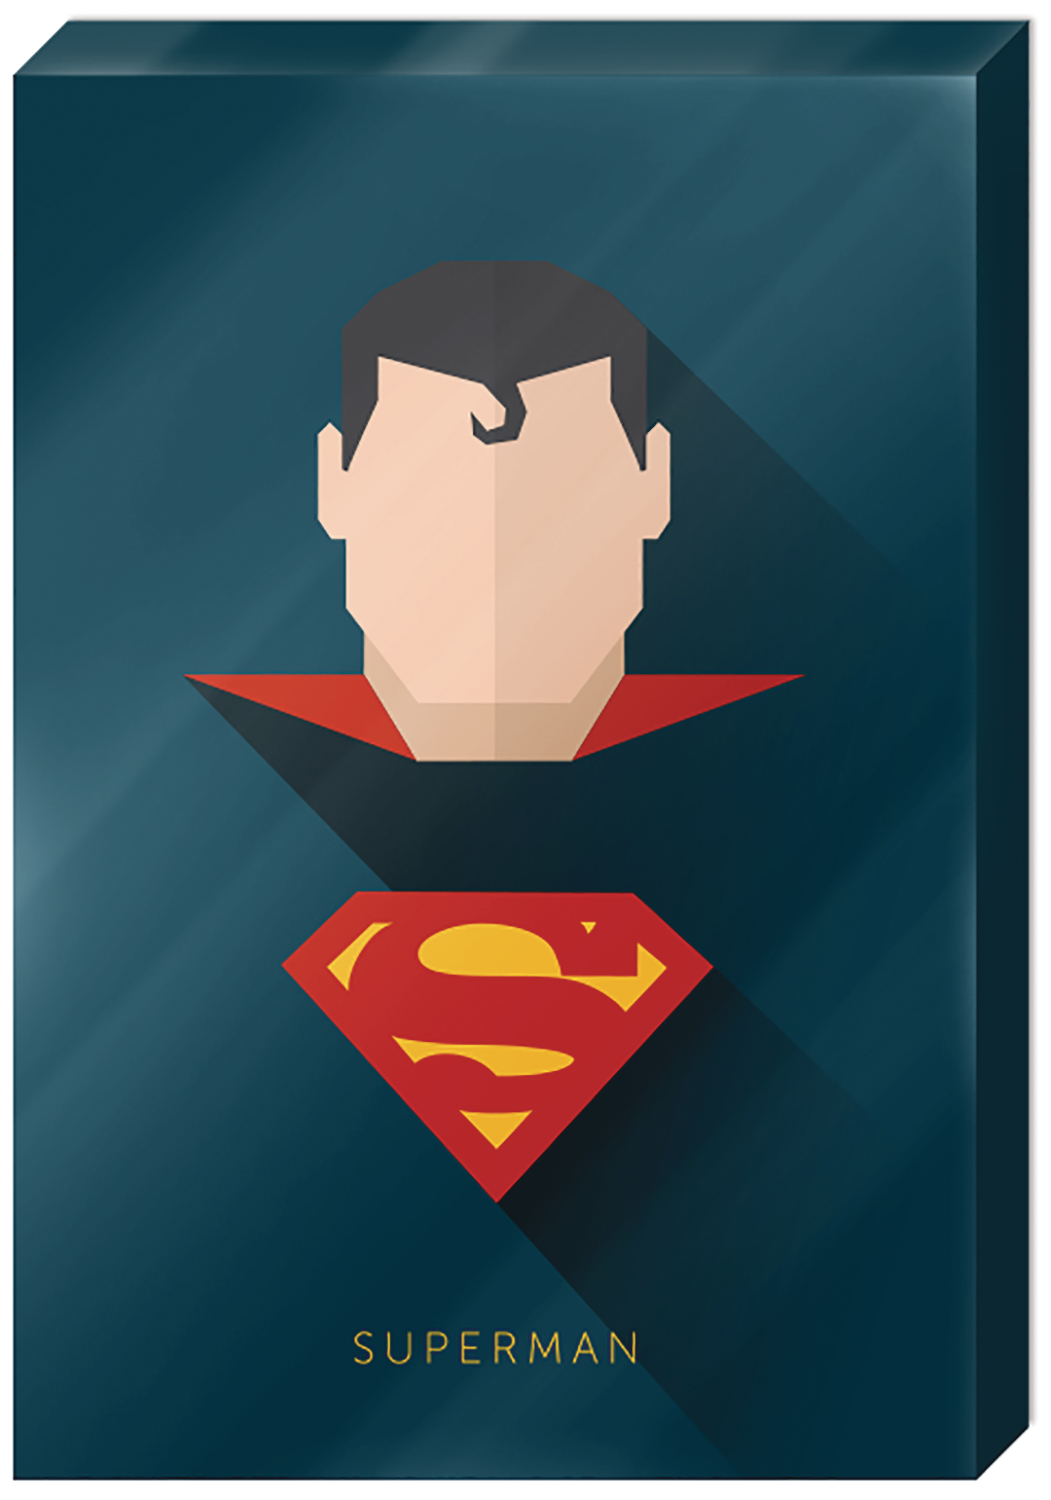 DC SUPERMAN HIGH GLOSS 13X19 IN CANVAS WALL ART